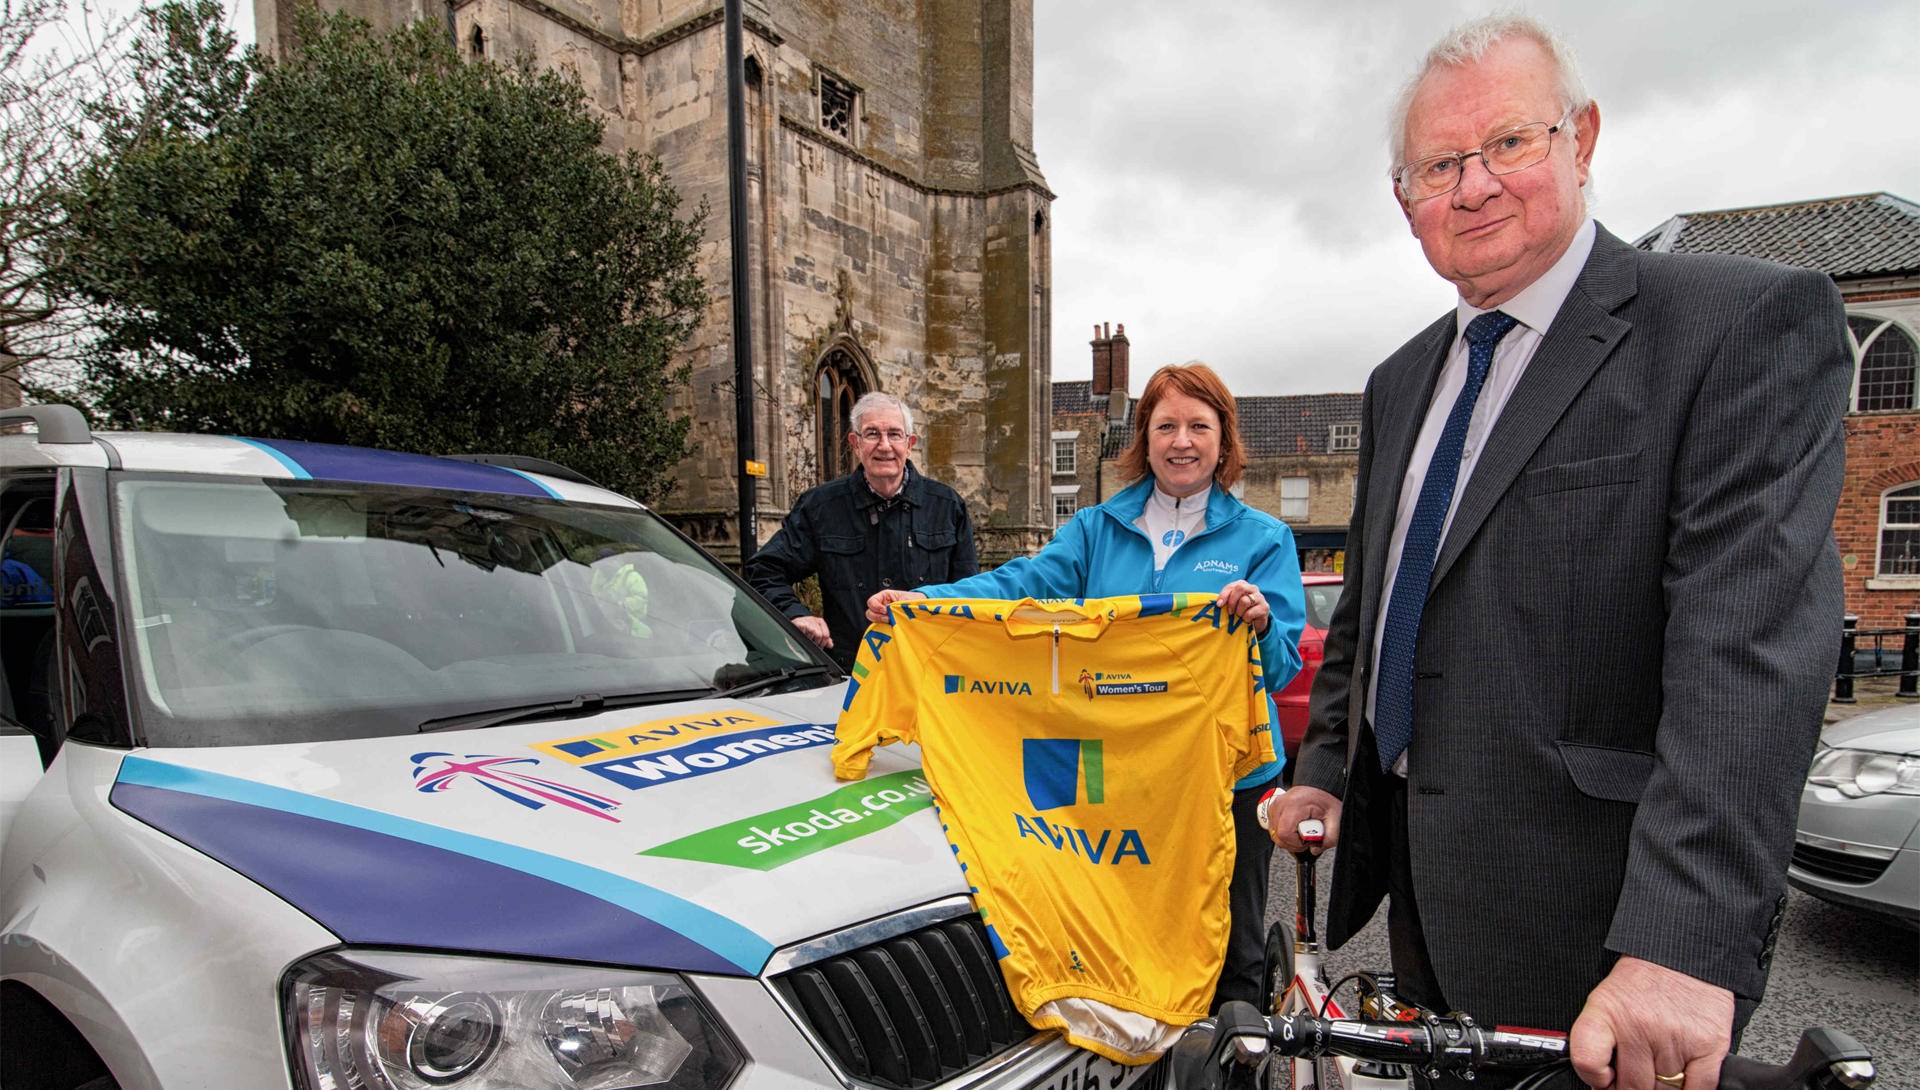 Sprints and Queen of the Mountains for Stage One announced in Beccles